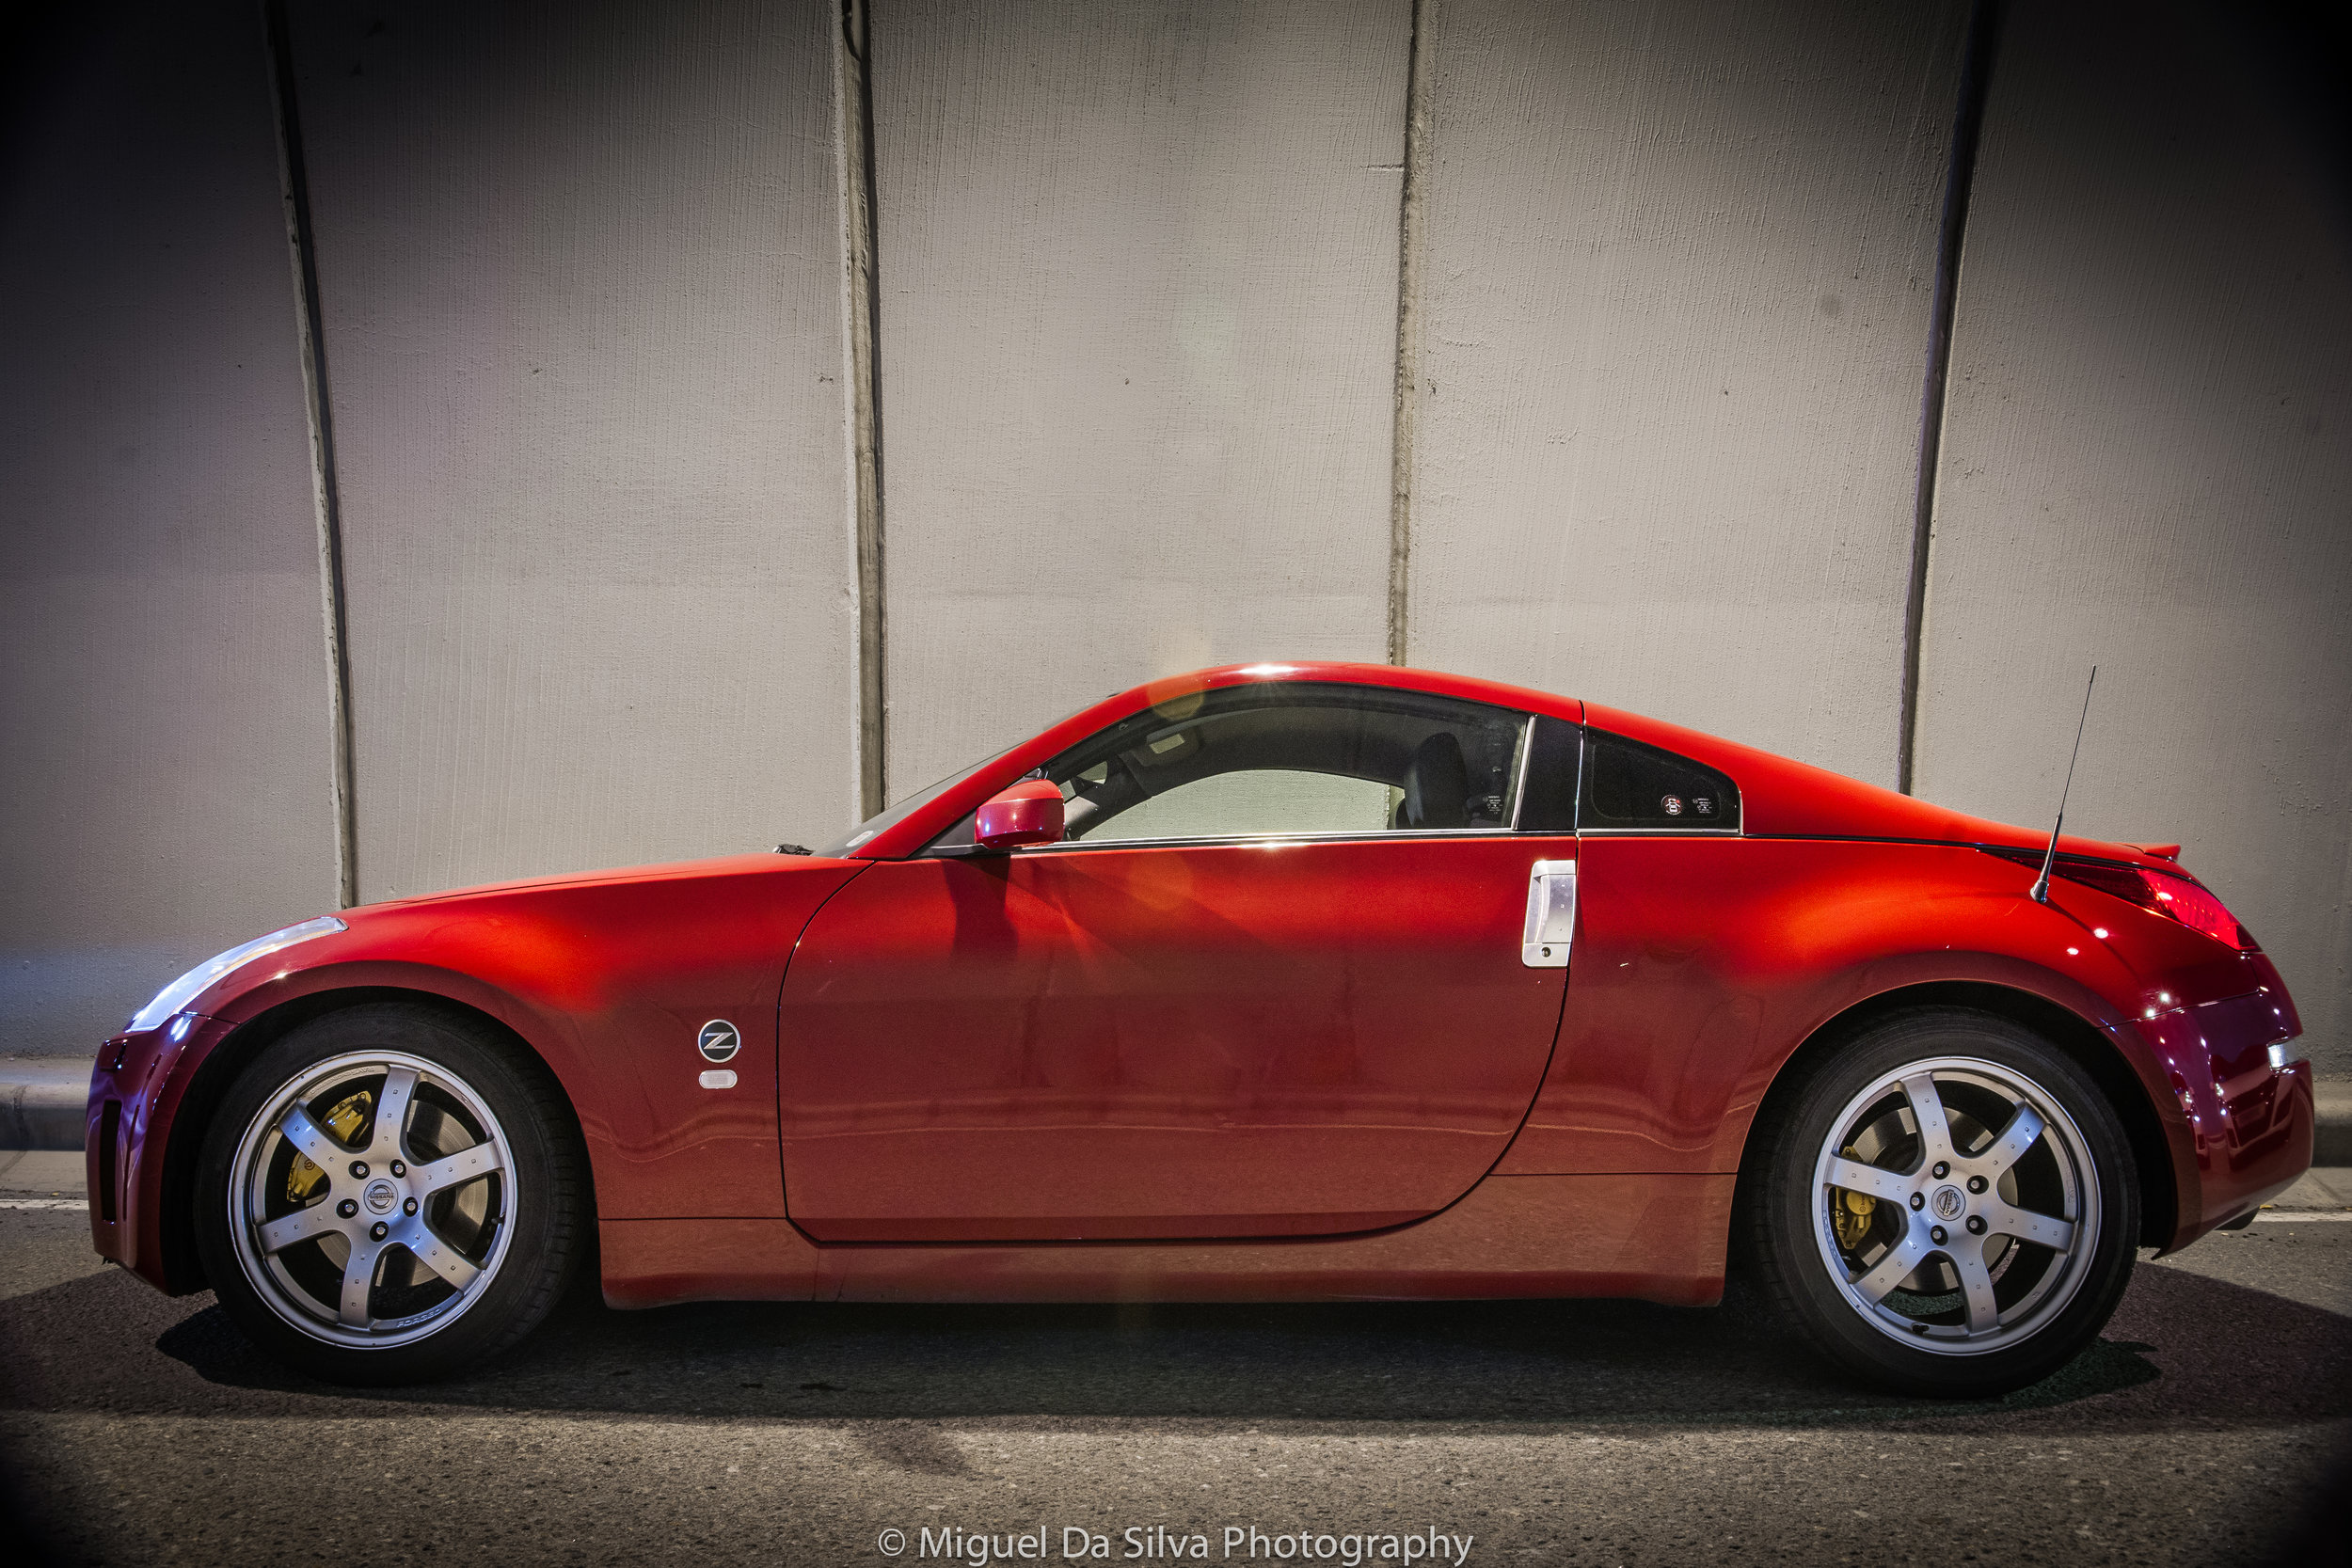 Nissan 350z miguel da silva destination freelance photographer jul 12 2017 motor car blogger blog passion motor auto automobile nissan 350z nissan z fairlady 2005 japanese red review wheels freelance sciox Image collections